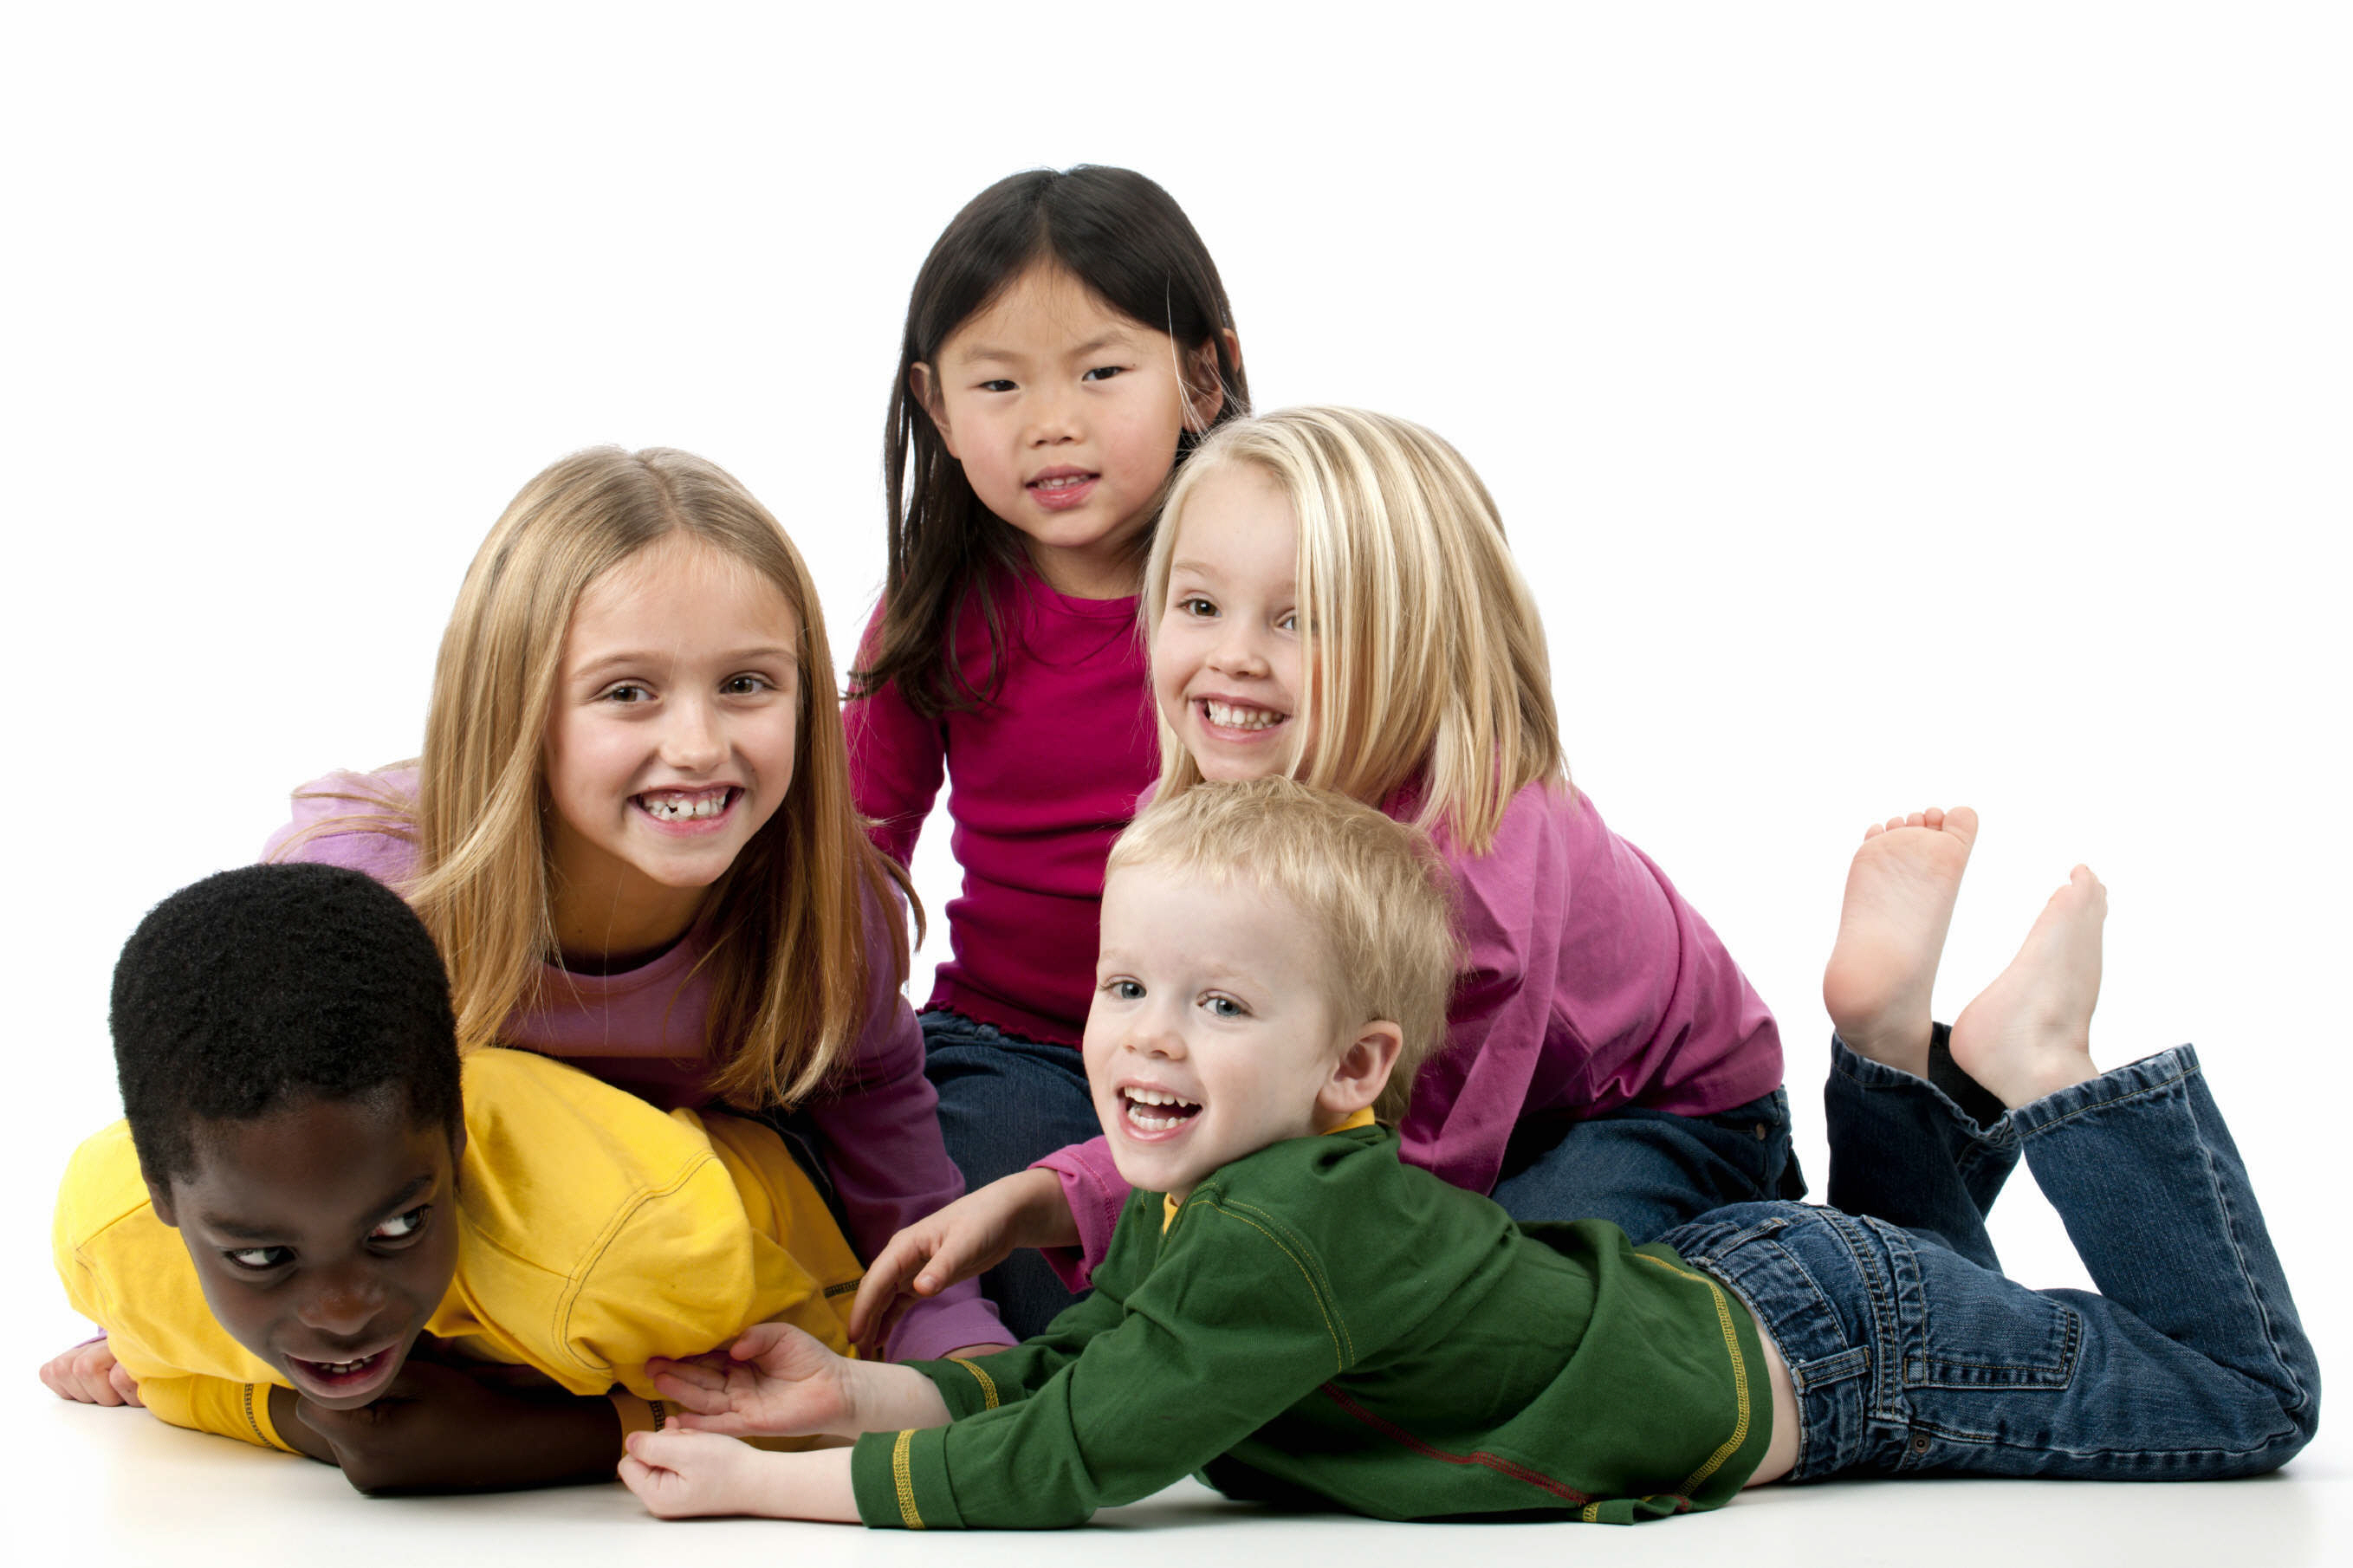 preschool kids Preschool, daycare, pre-k and kindergarten activities with developmentally appropriate lesson plans, themes and curriculum resources for teachers plus home learning ideas for parents and preschool children.